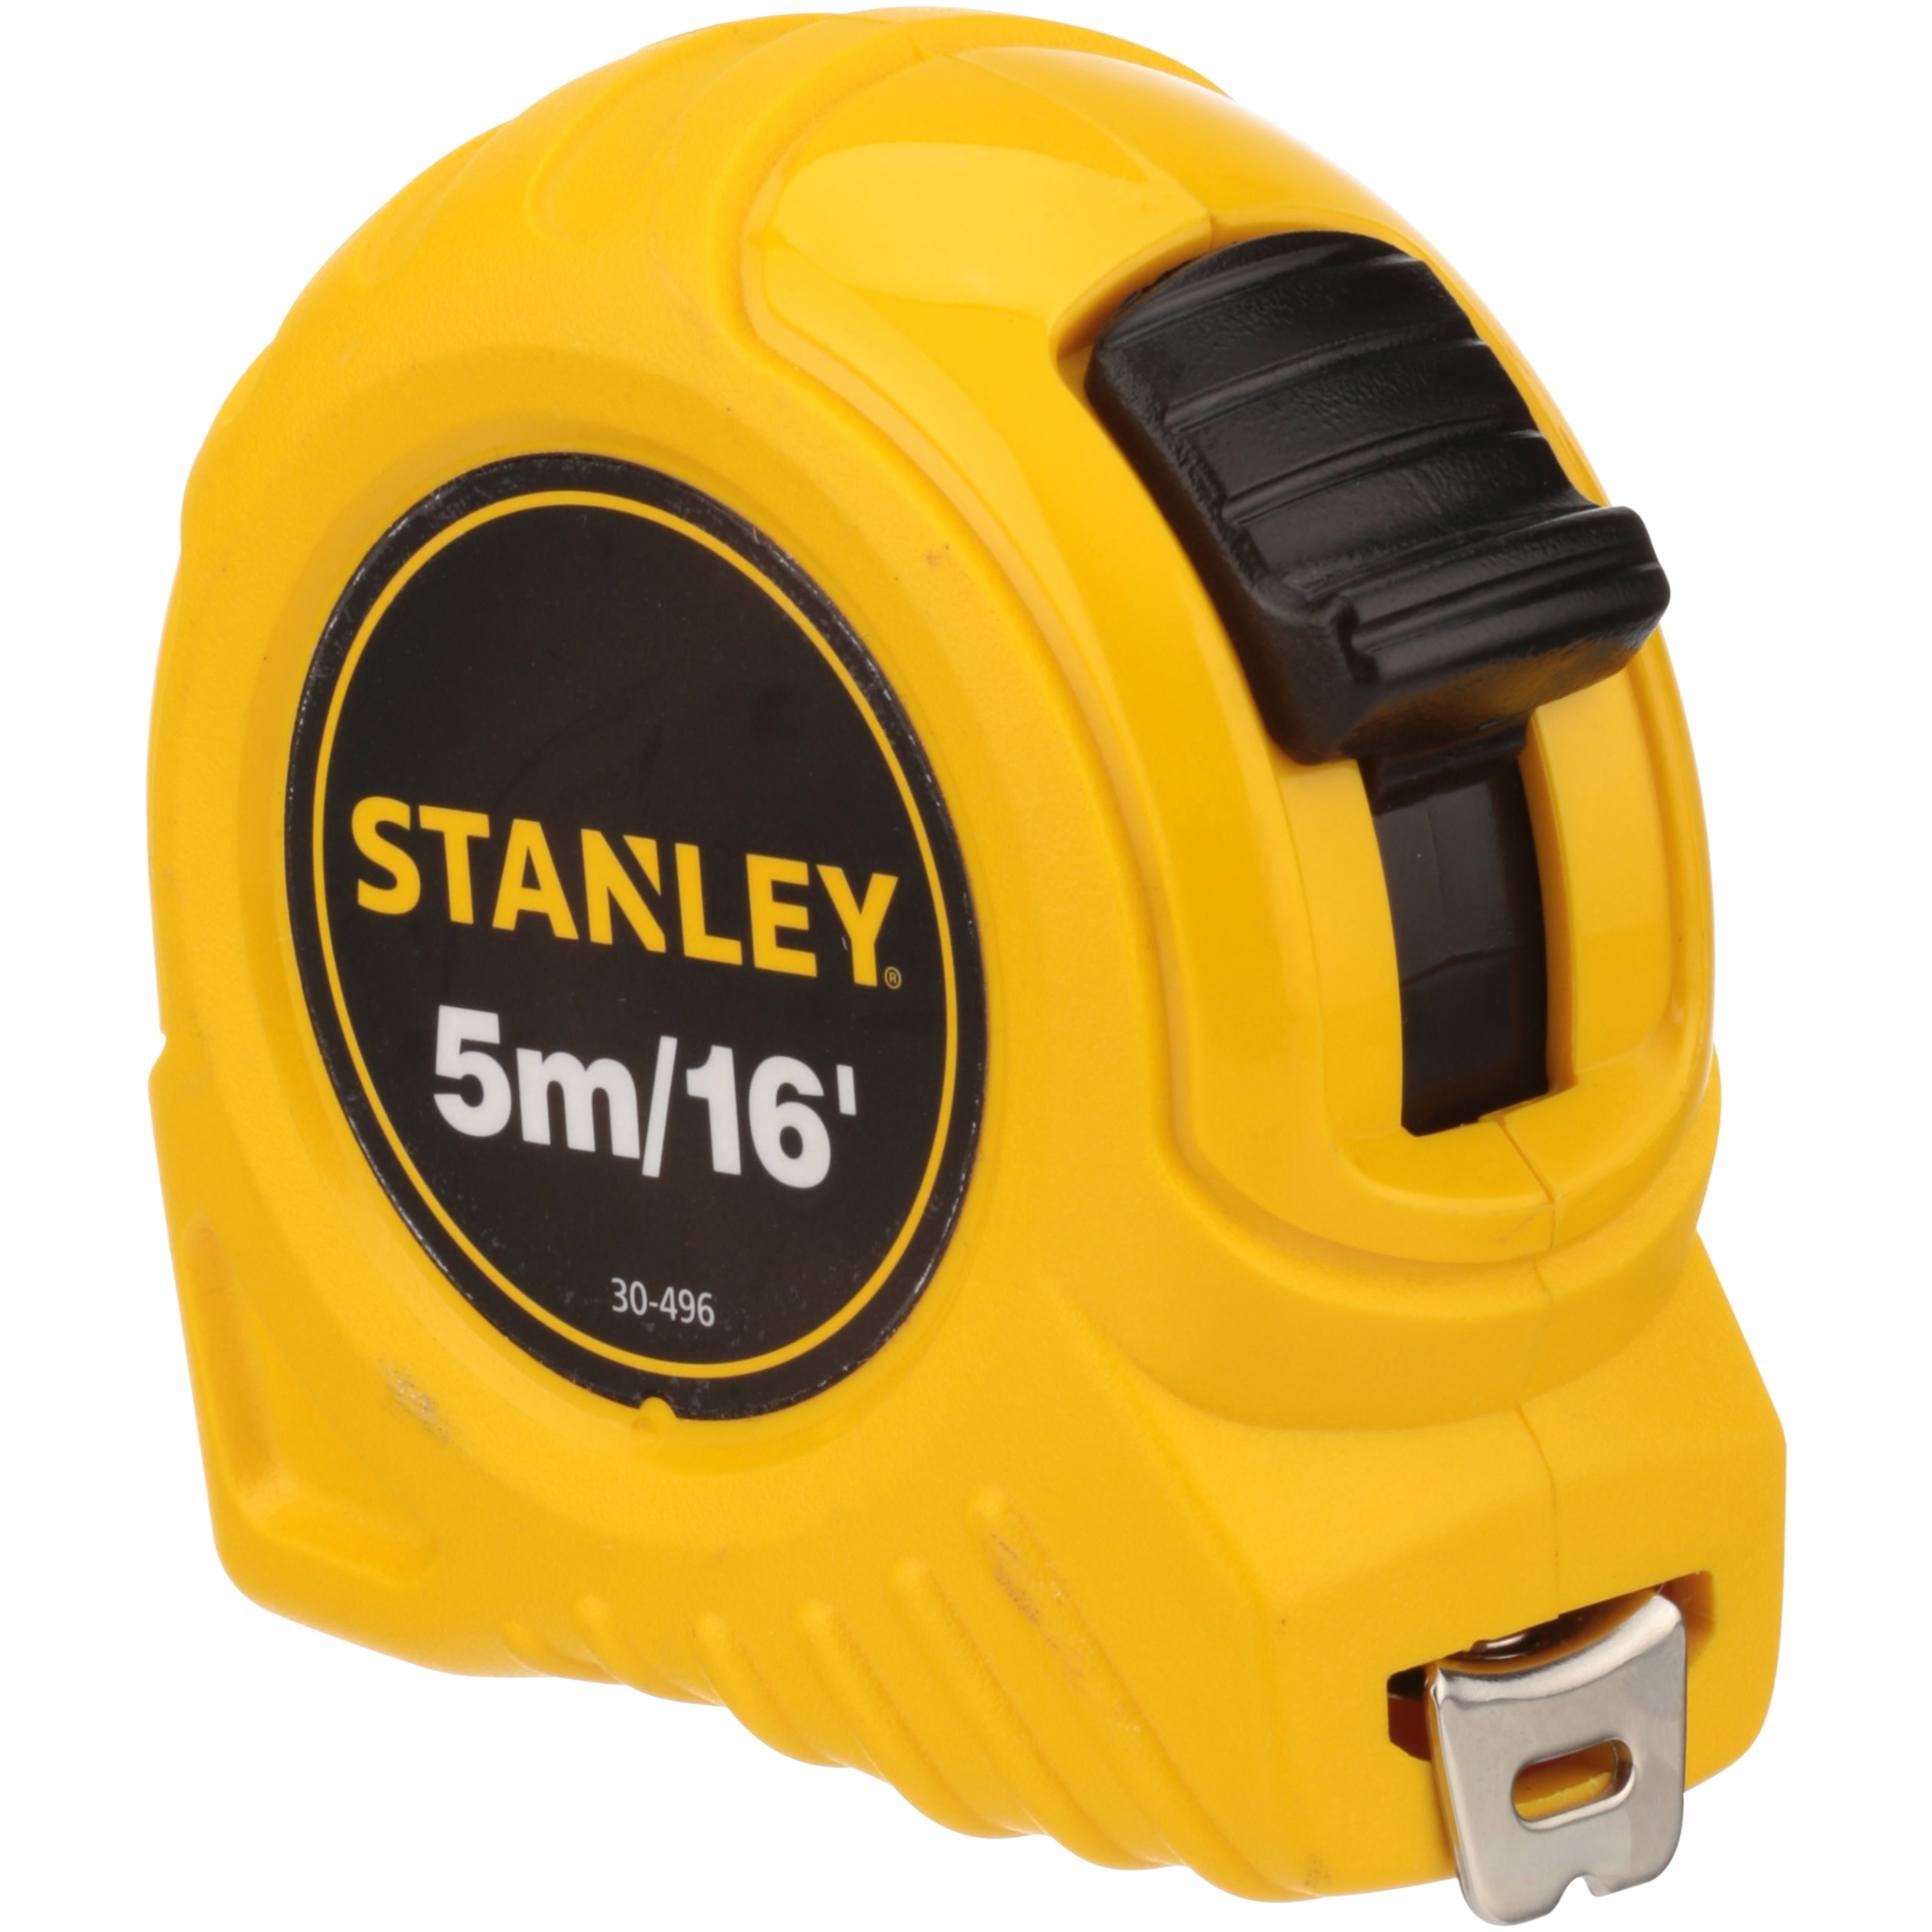 Stanley® 5m/16' Rule Tape Measure